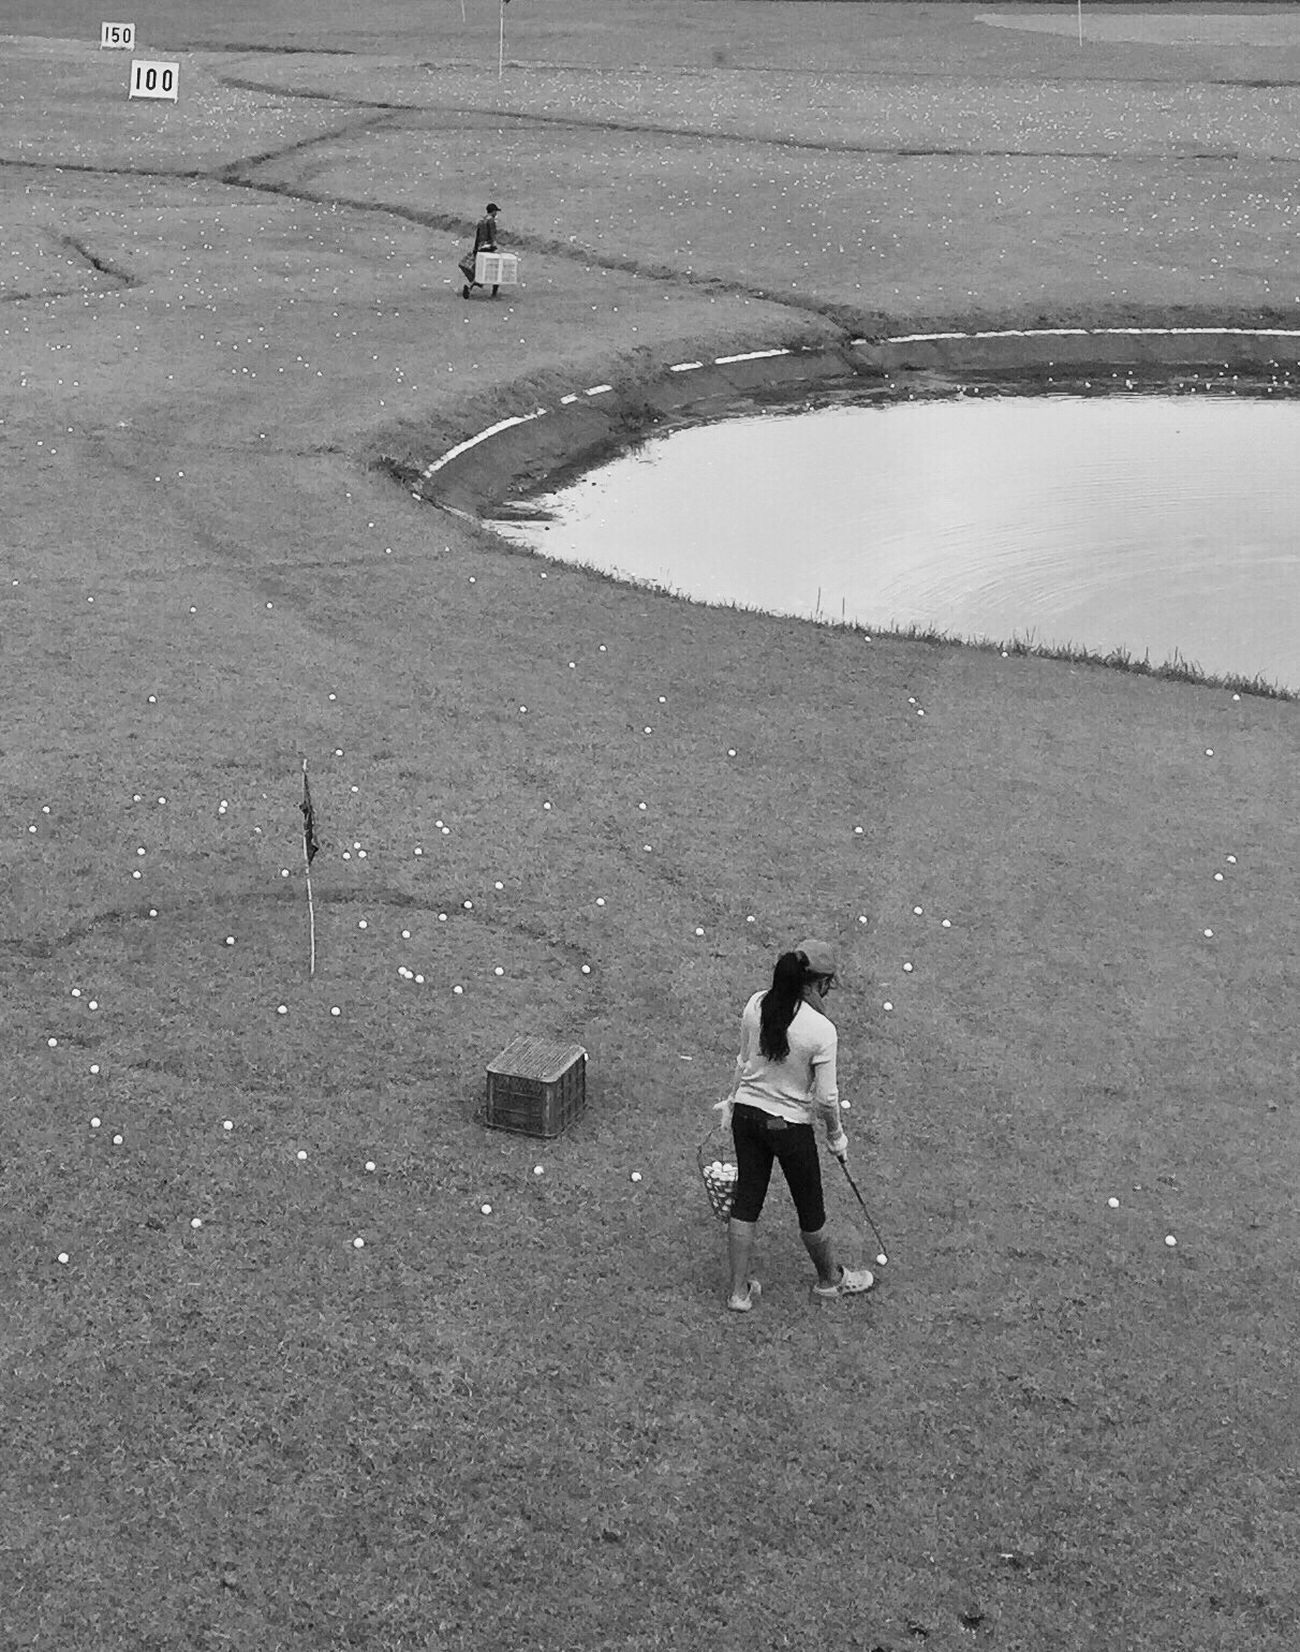 Golf ball pickers Full Length Real People Casual Clothing Leisure Activity Lifestyles Day Outdoors One Person Women Nature People Golf Course Driving Range Eye4photography  EyeEm Gallery Sports Photography